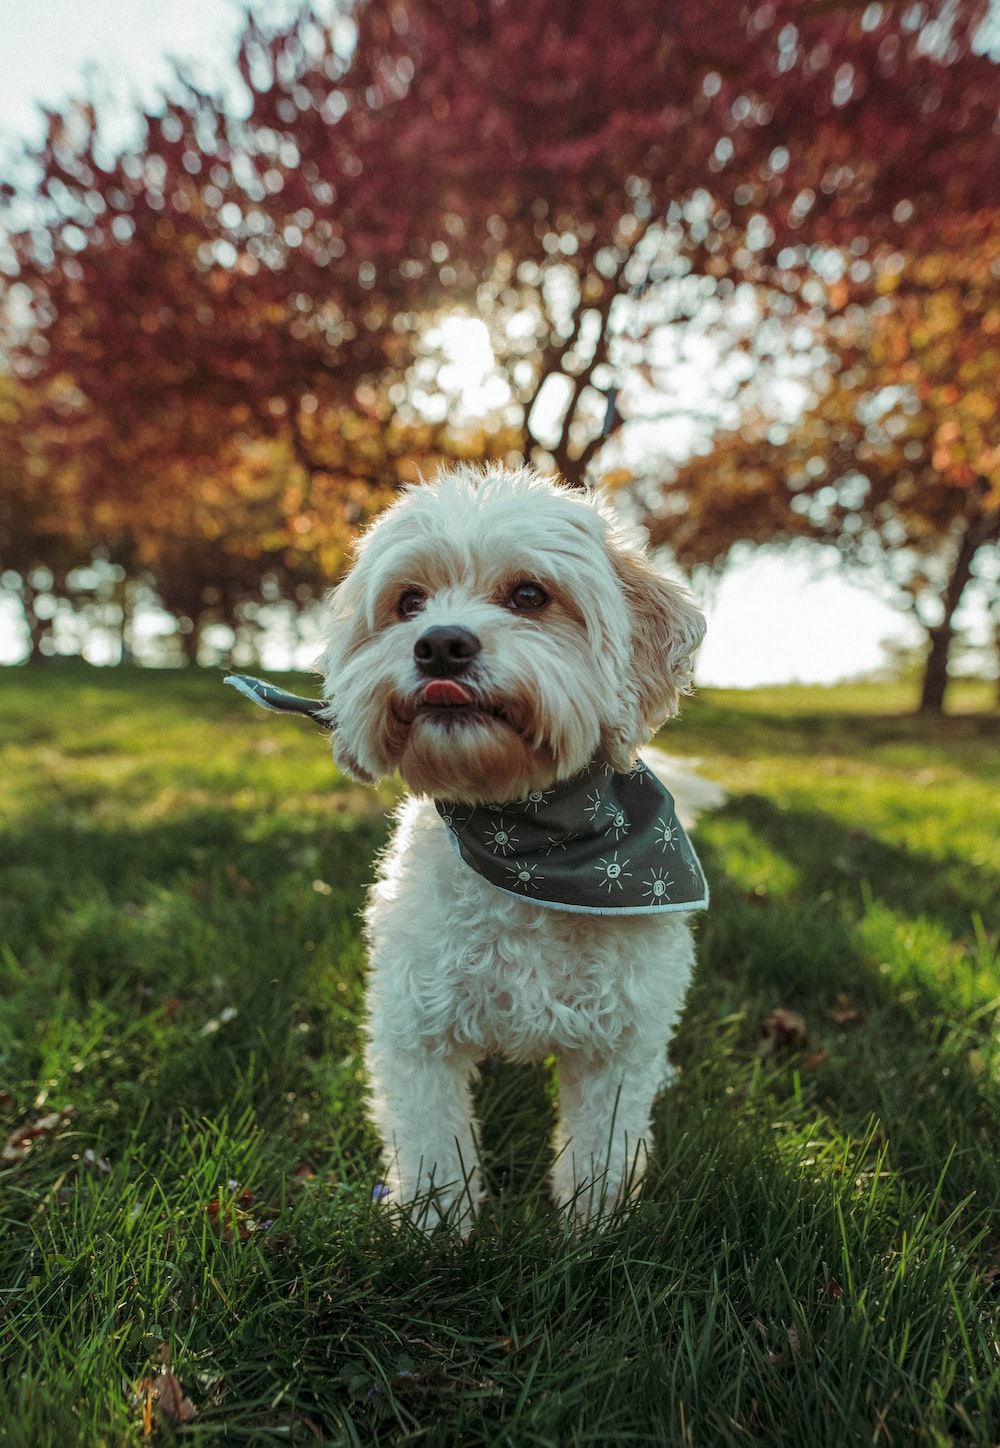 white long coated small dog on green grass field during daytime